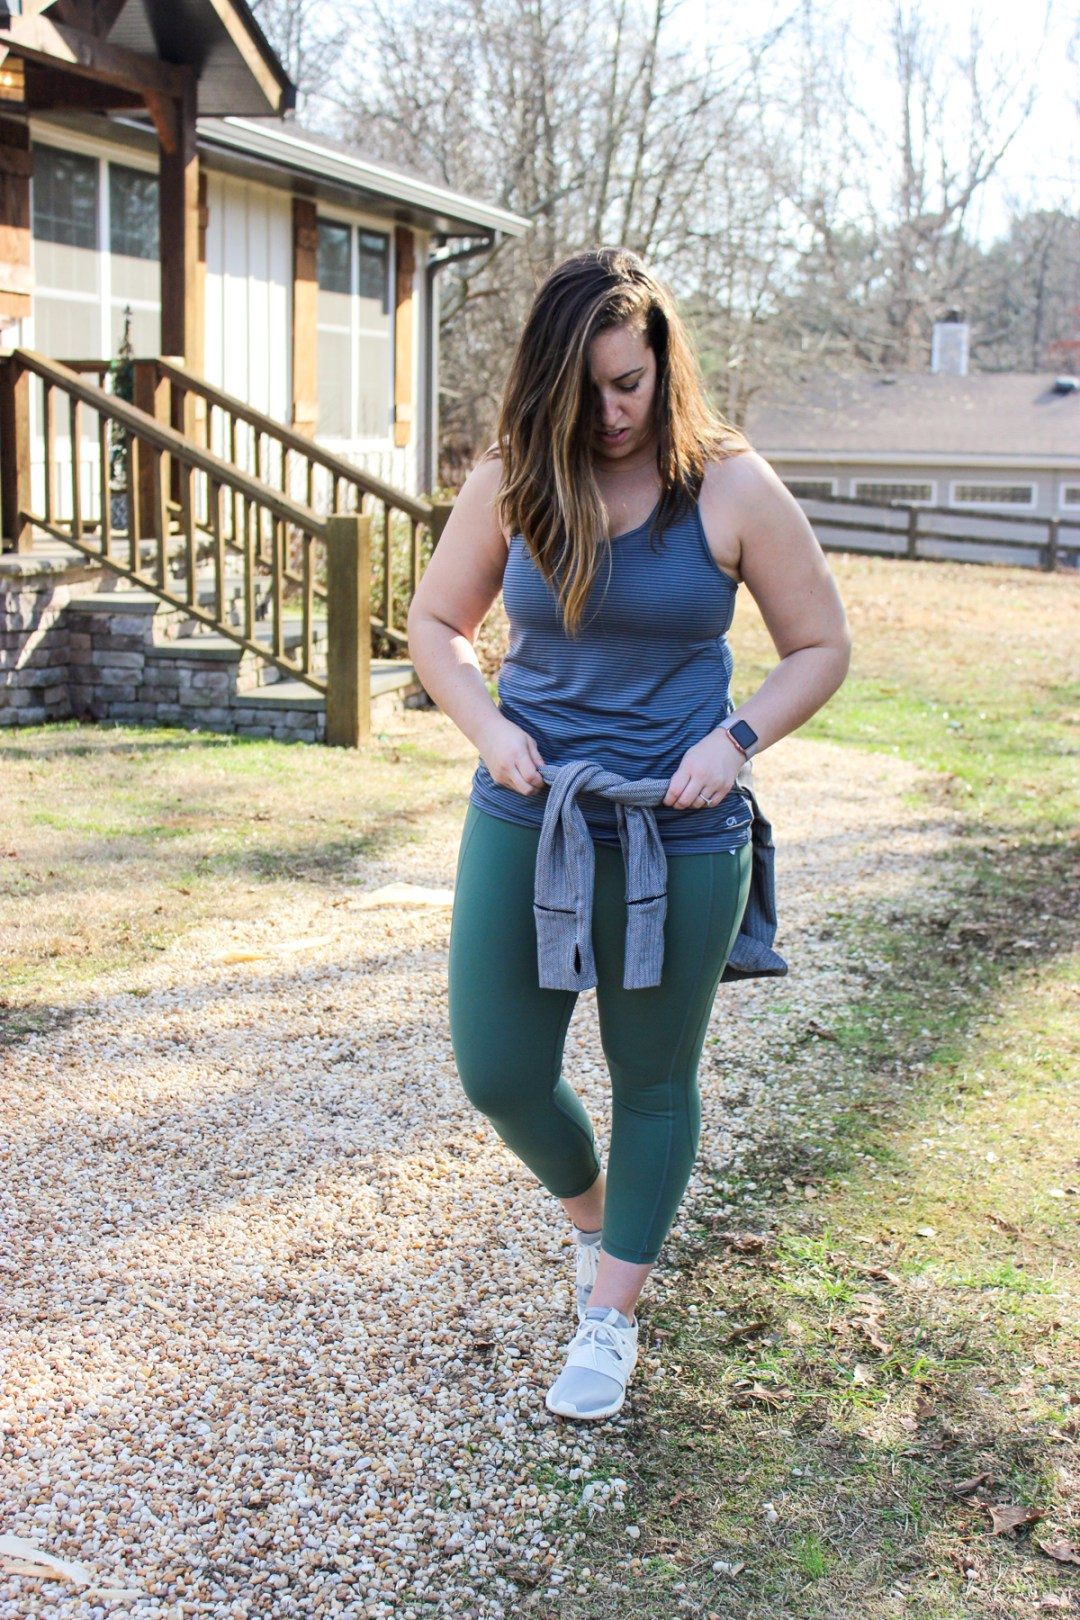 My Favorite Athleisure Brands | Just Peachy Blog